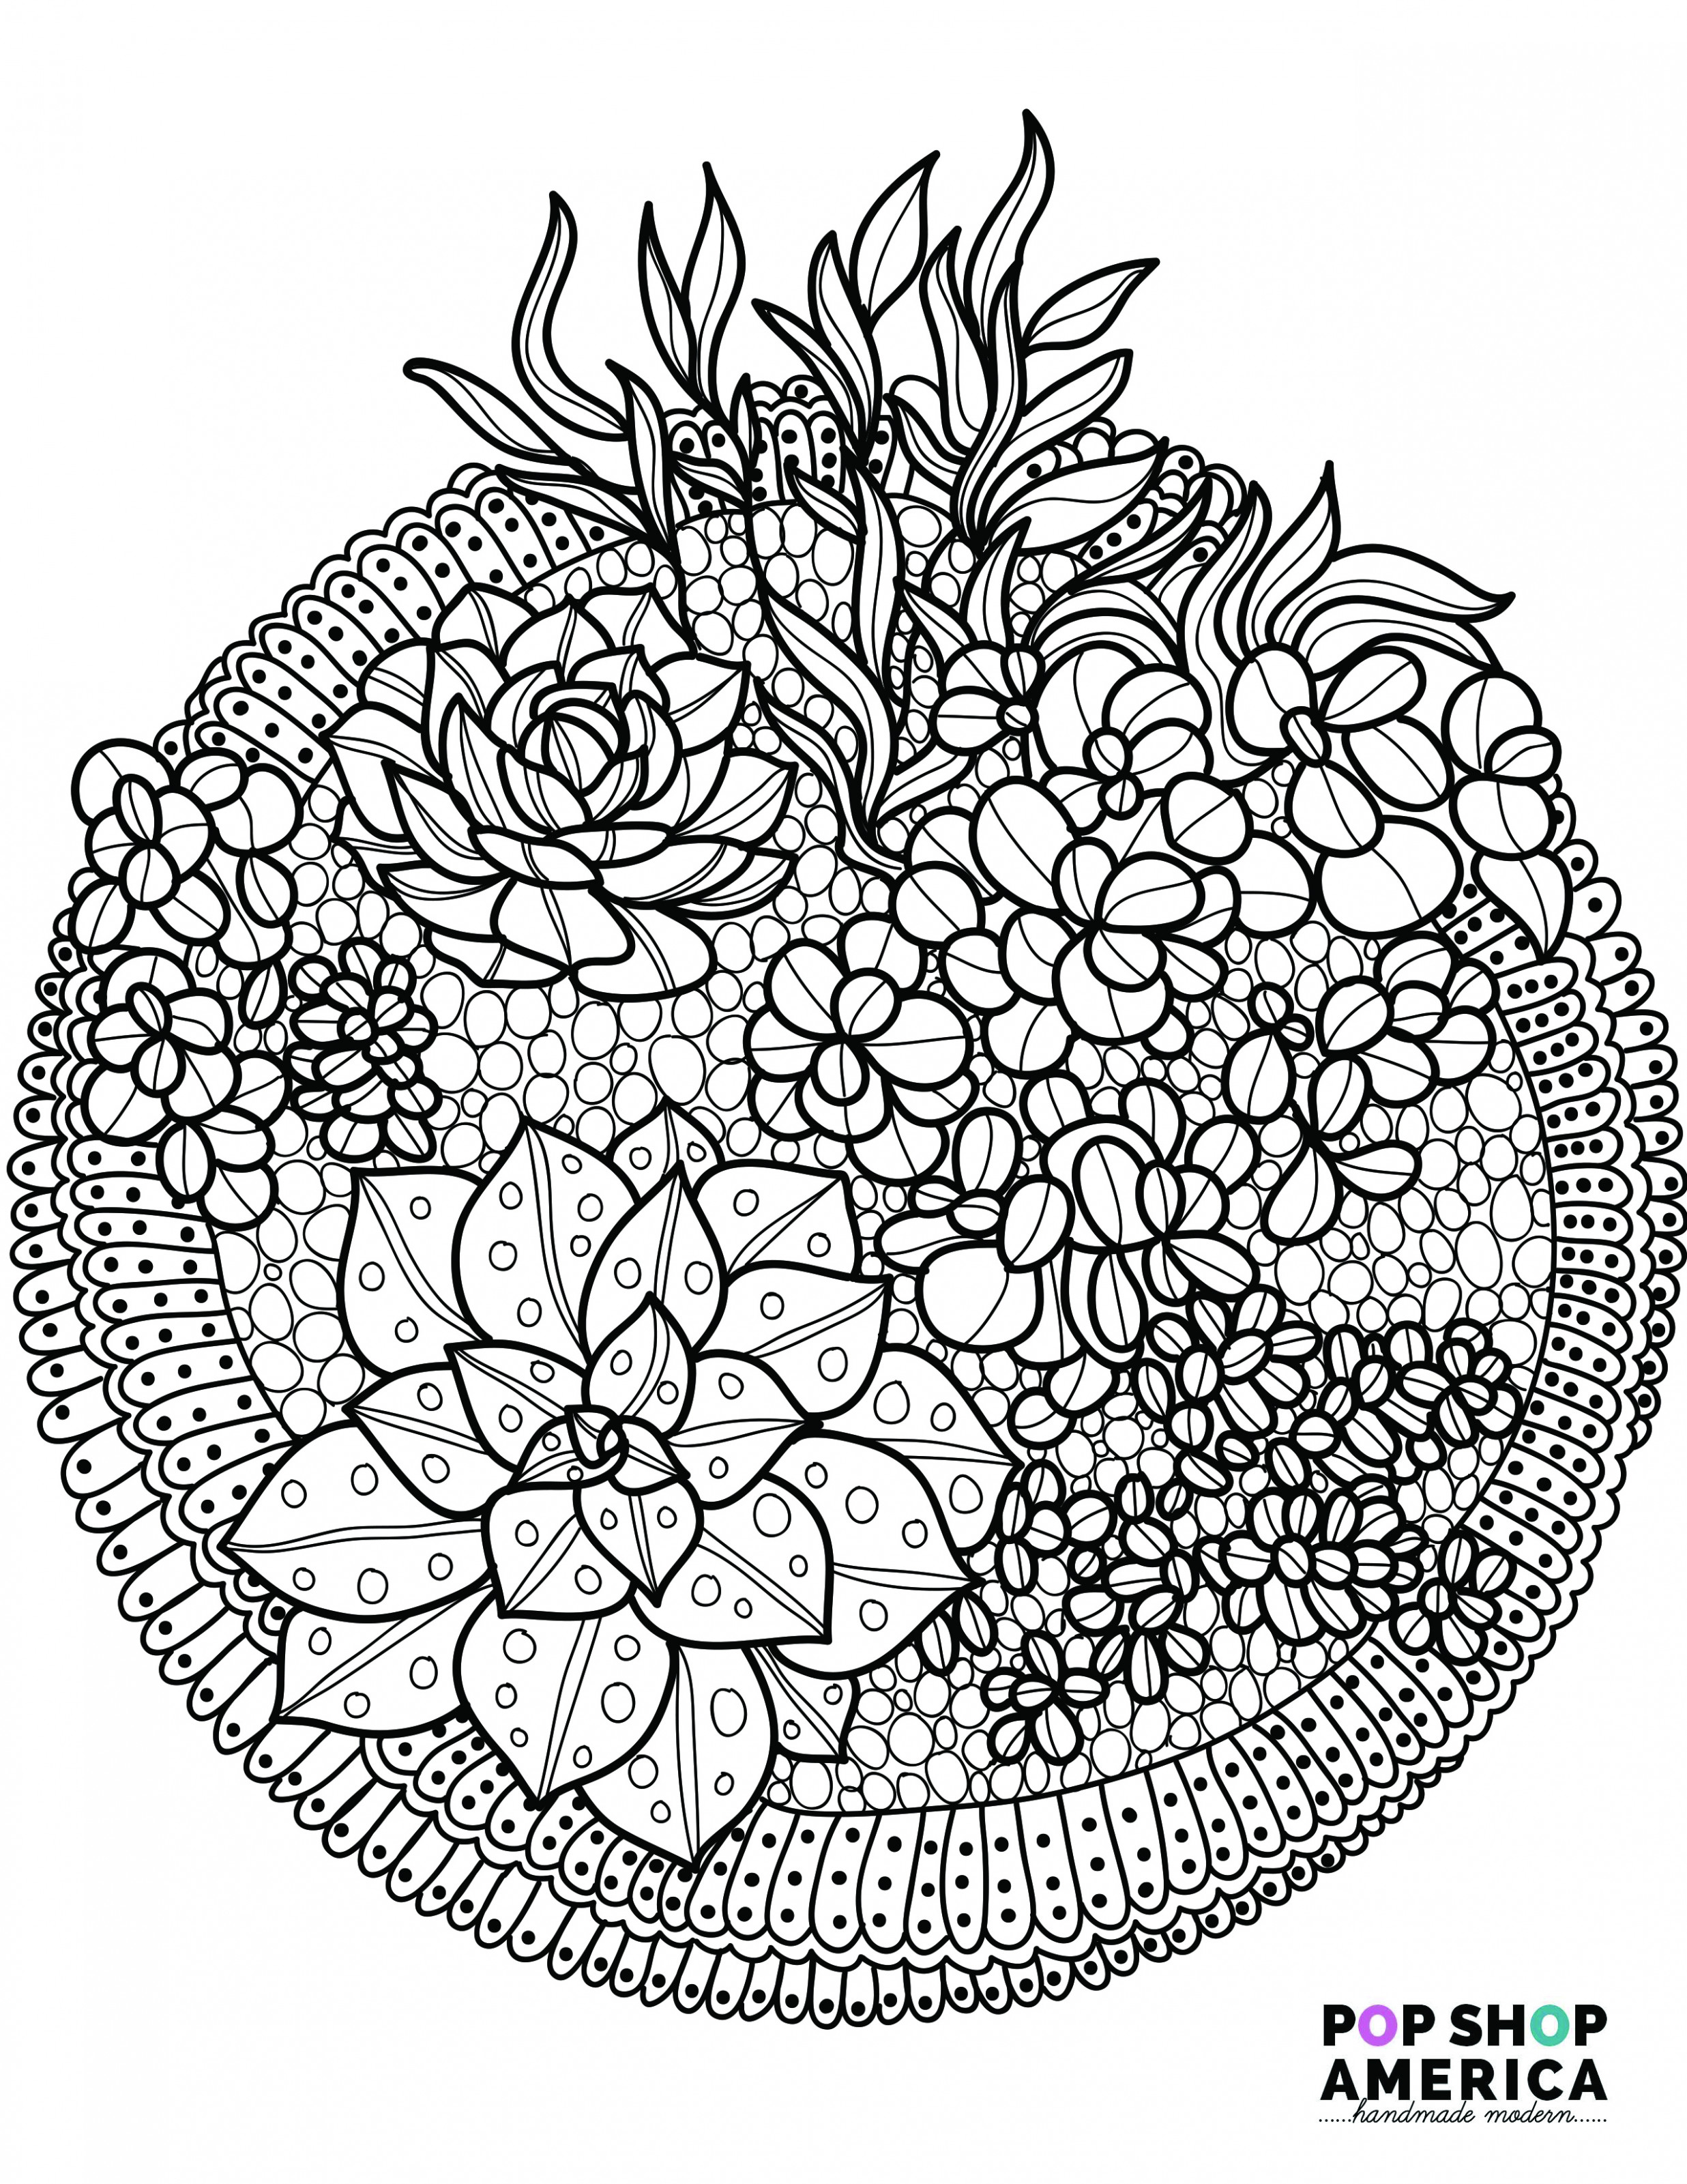 Free Adult Coloring Book Pages with Succulent Terrariums - is coloring book free